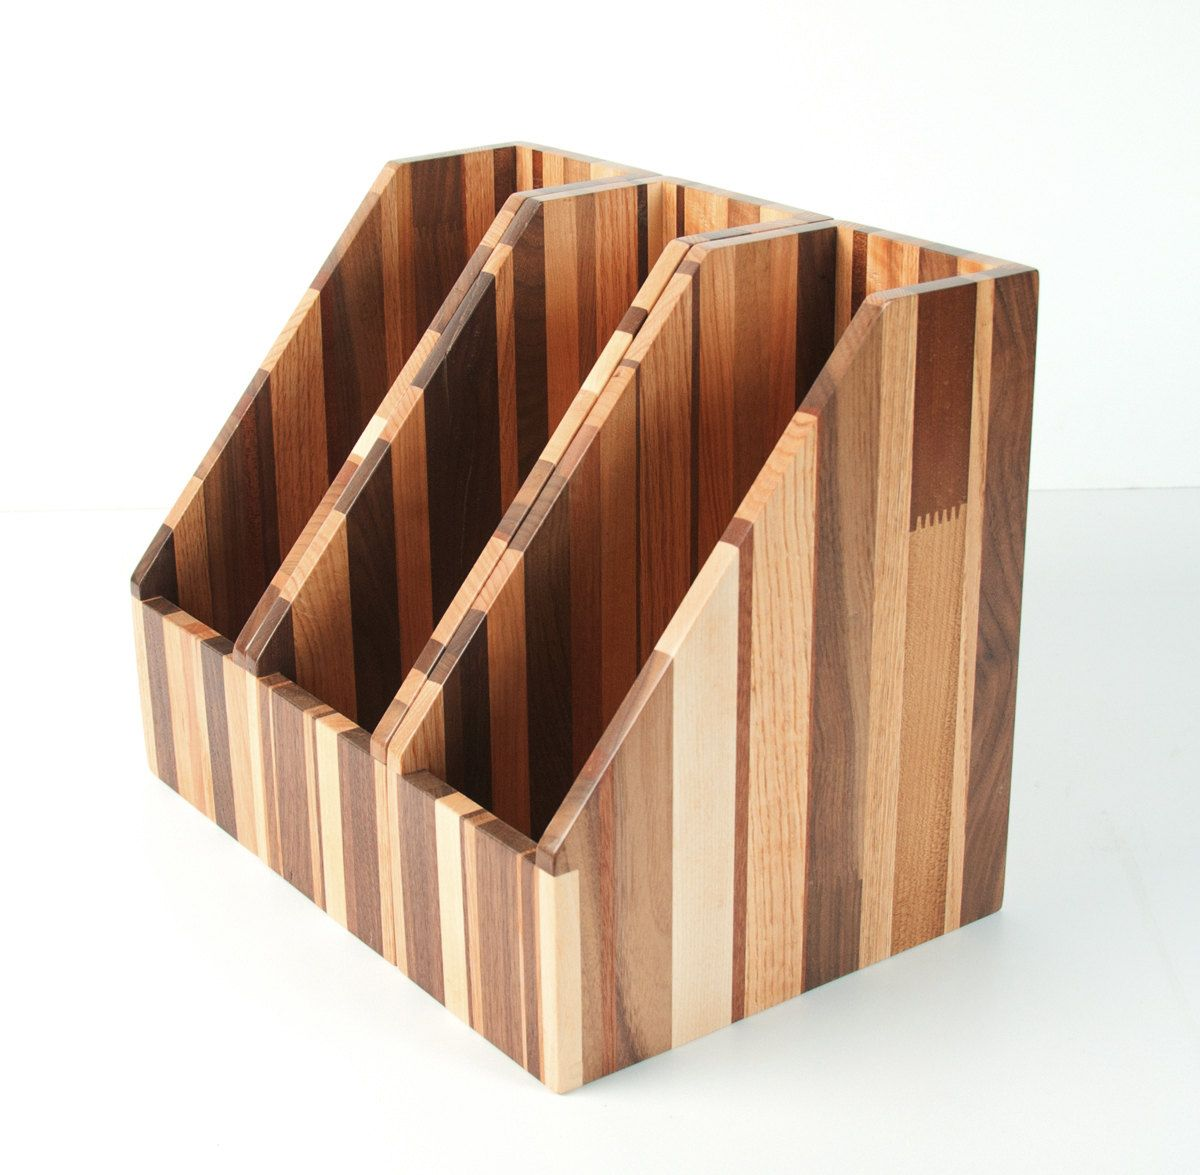 $80 USD - Upcycled Reclaimed Recyled Wood File Holder Magazine Holder made  from 100% reclaimed